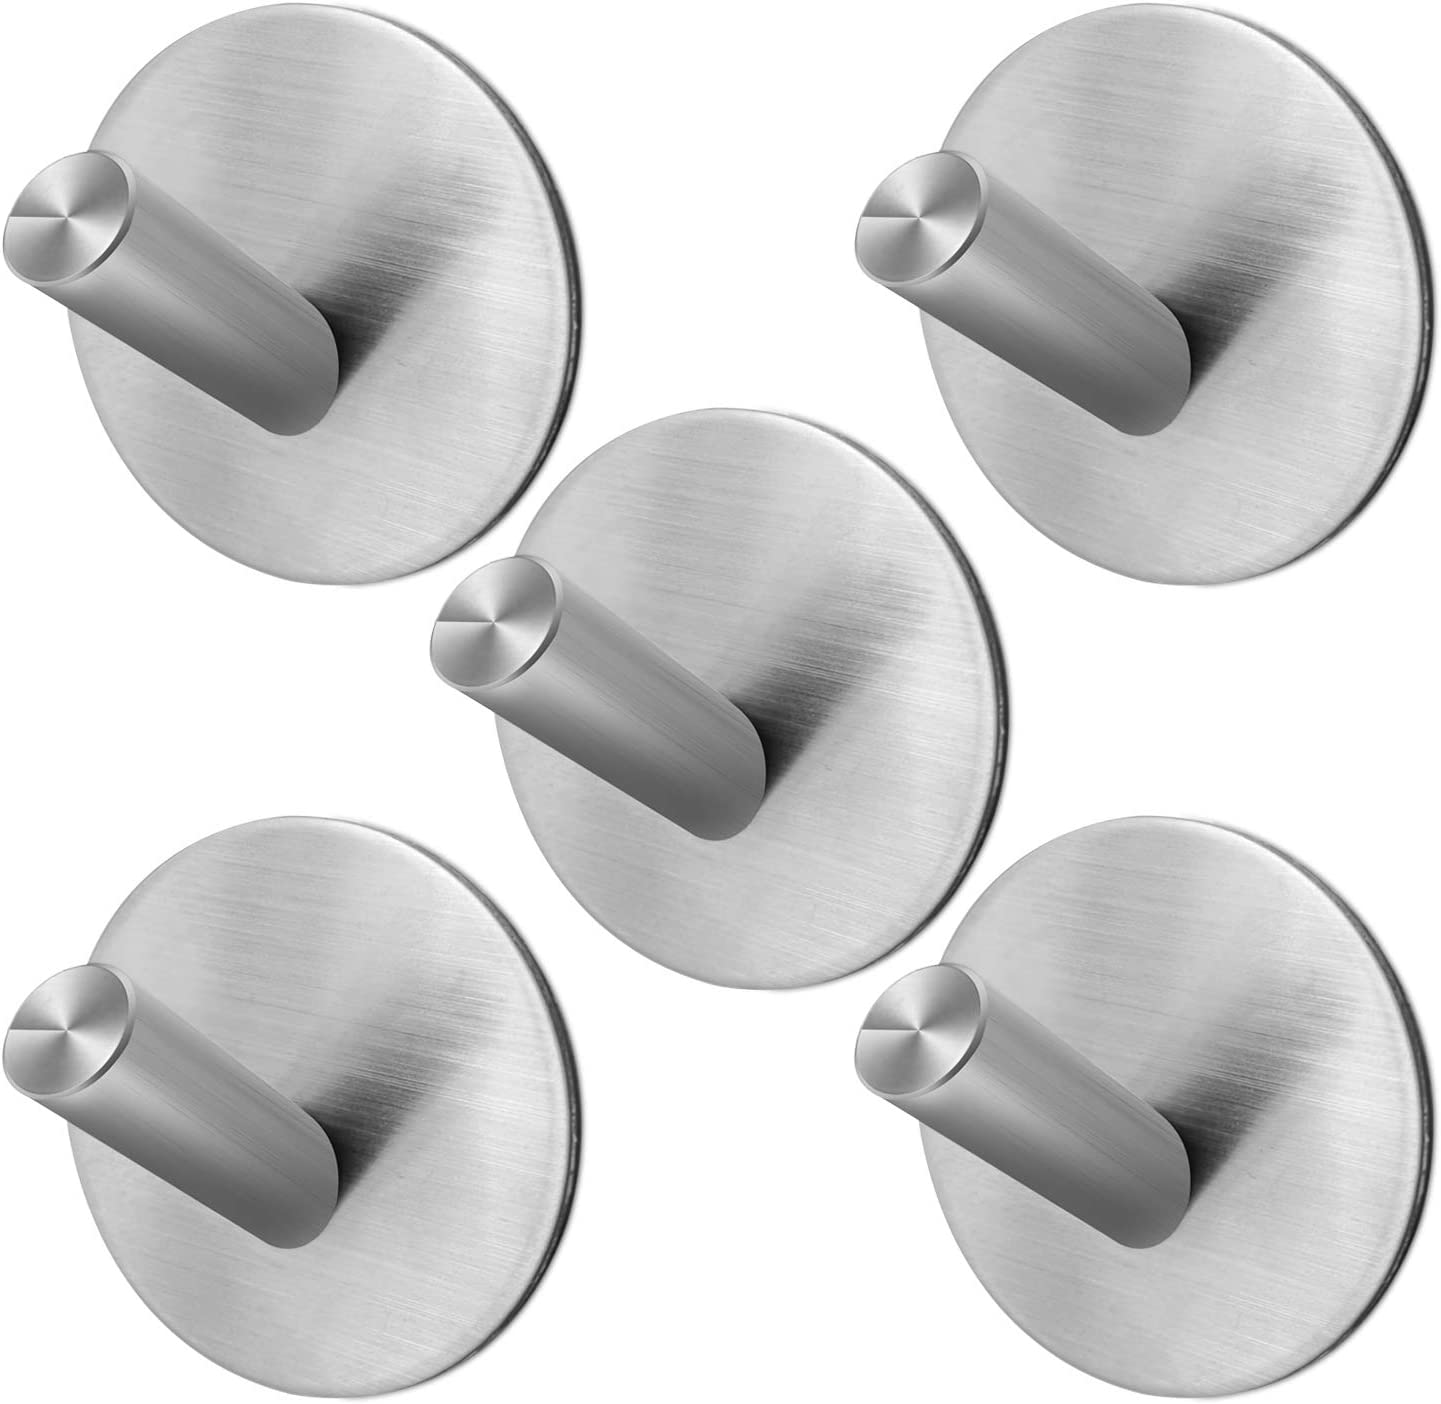 Jekoo Adhesive Hooks, Towel Hooks Heavy Duty Wall Hook for Hanging with SUS304 Stainless Steel for Shower Bathroom Kitchen Office Ideal for Robes, Towels, Clothes, Bags, Keys, Hats - 5 Packs